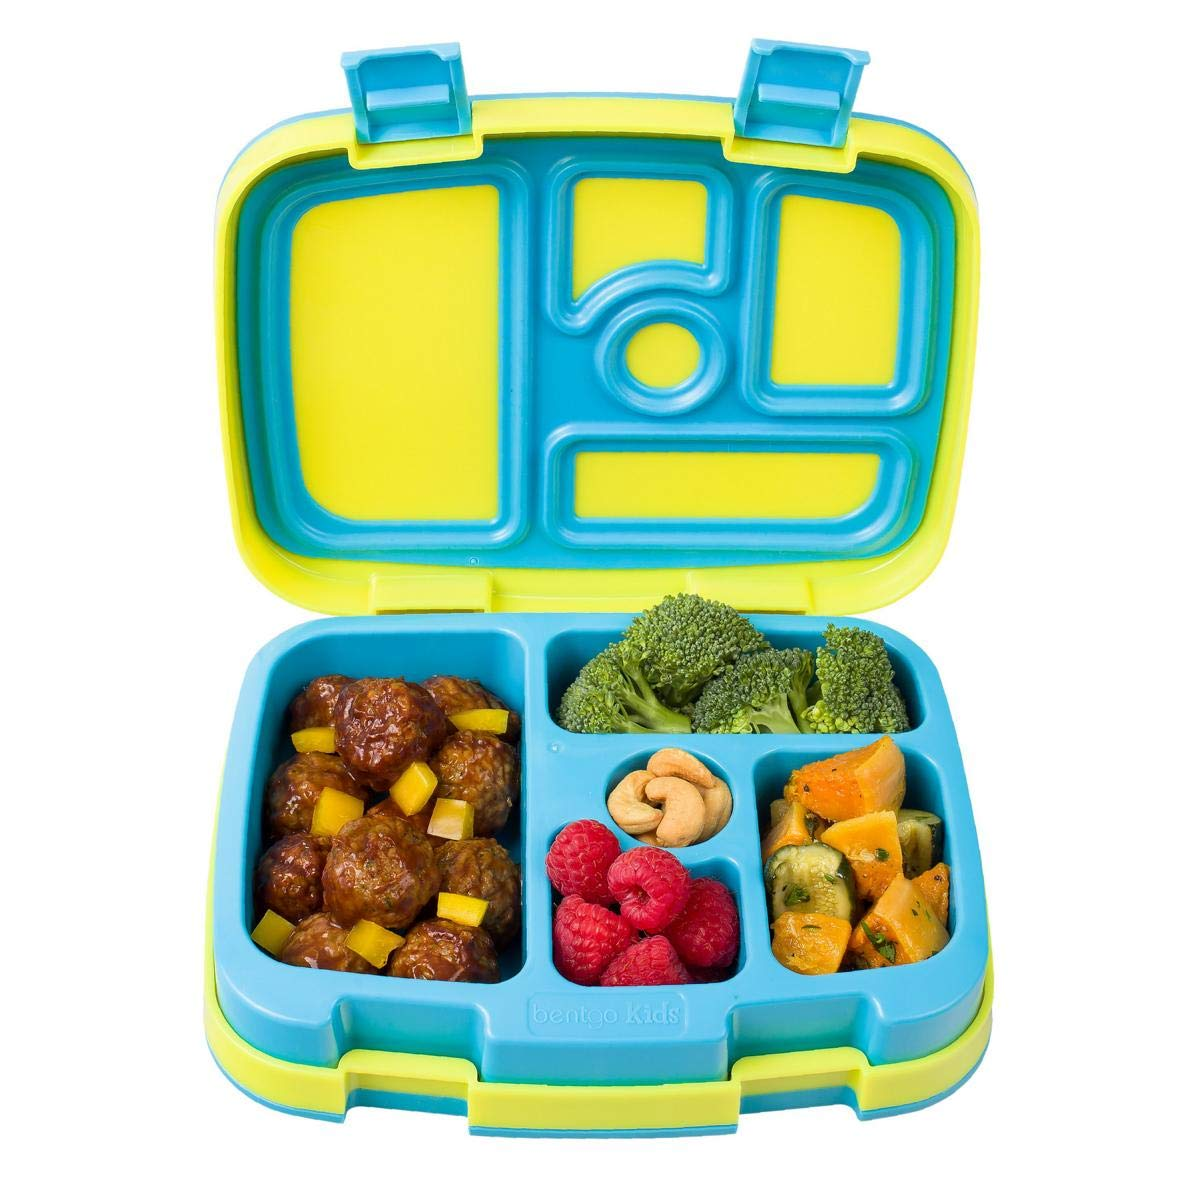 Bentgo Kids Brights - Leak-Proof, 5-Compartment Bento-Style Kids Lunch Box - Ideal Portion Sizes for Ages 3 to 7 - BPA-Free and Food-Safe Materials (Citrus Yellow) BGOBRTS-C